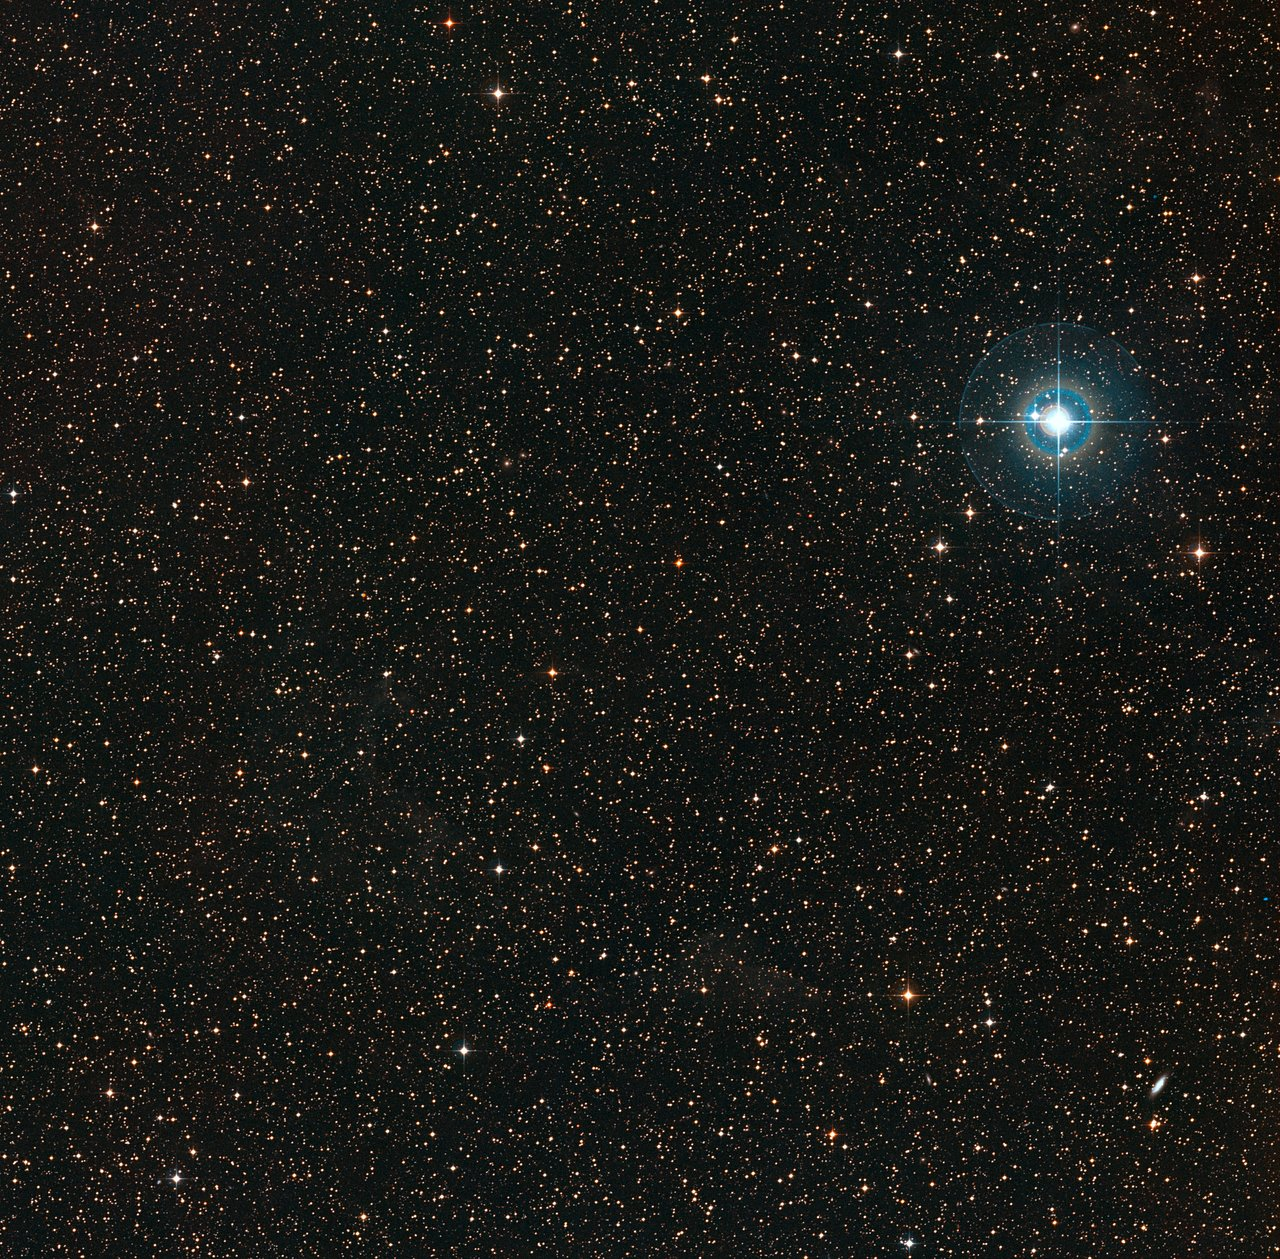 Surrounding environment of the PDS 70 visible in the centre. The bright Chi Centauri star on the right is approximately 510 light years from the Earth.